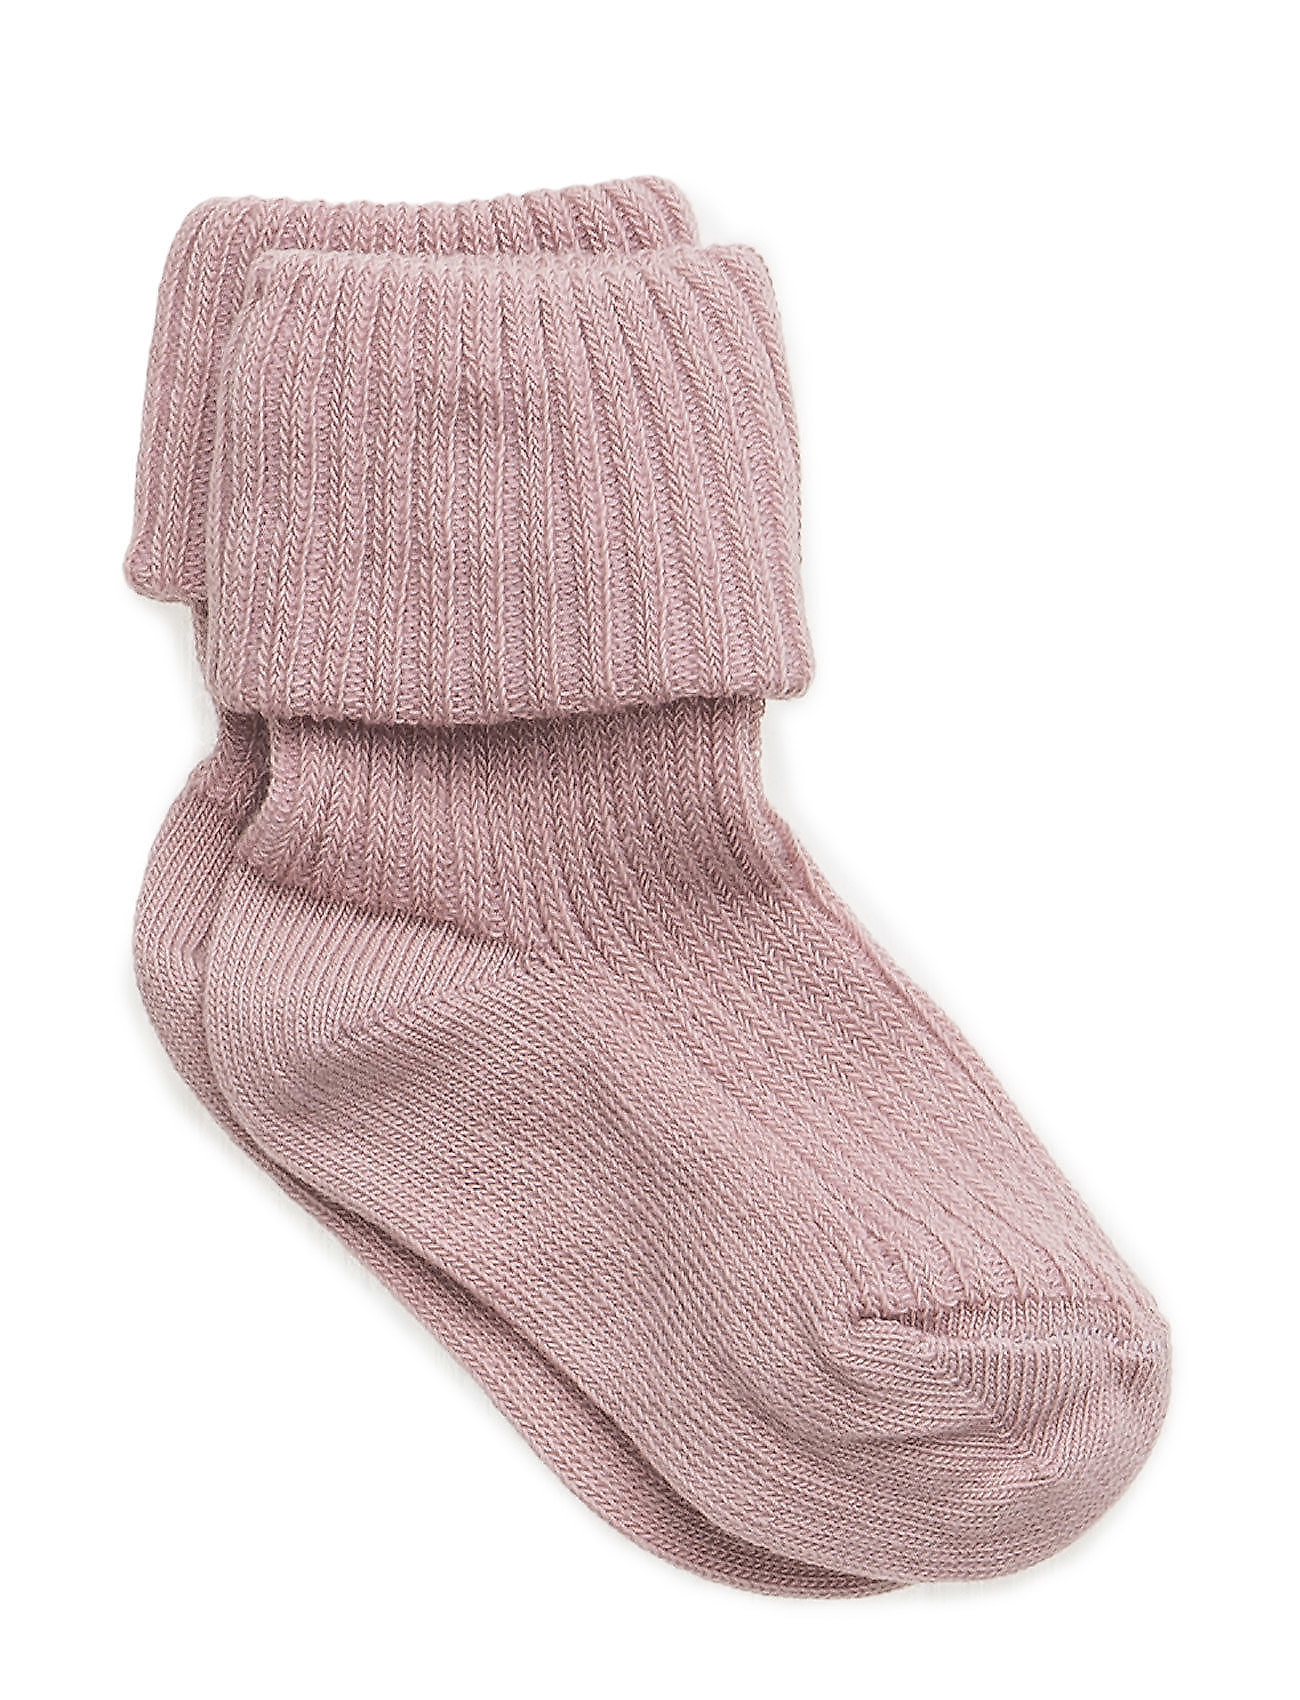 mp Denmark ANKLESOCK 2/2 PAD BABY - 188/WOOD ROSE